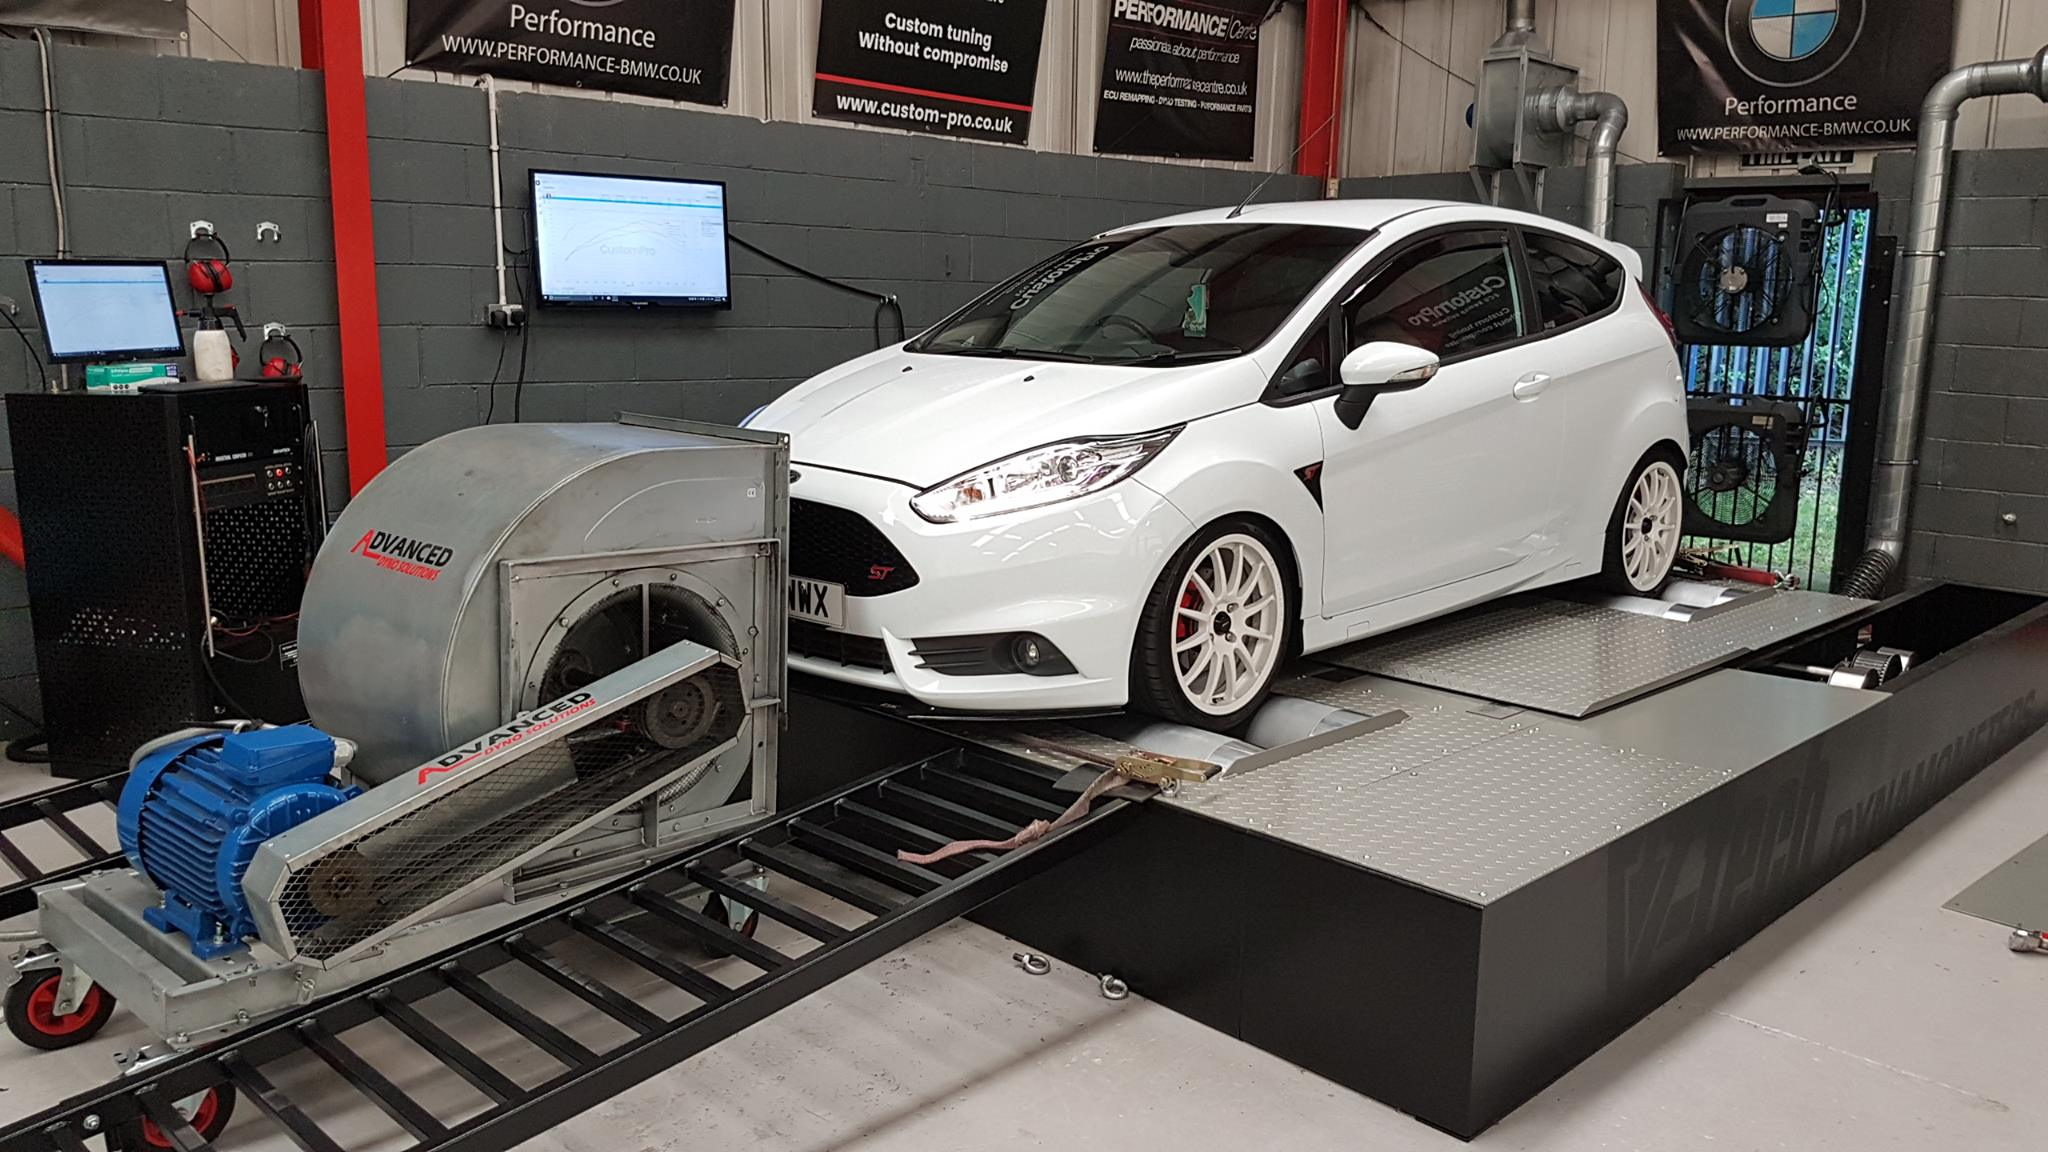 Ford Fiesta ST 180 - CustomPro remap